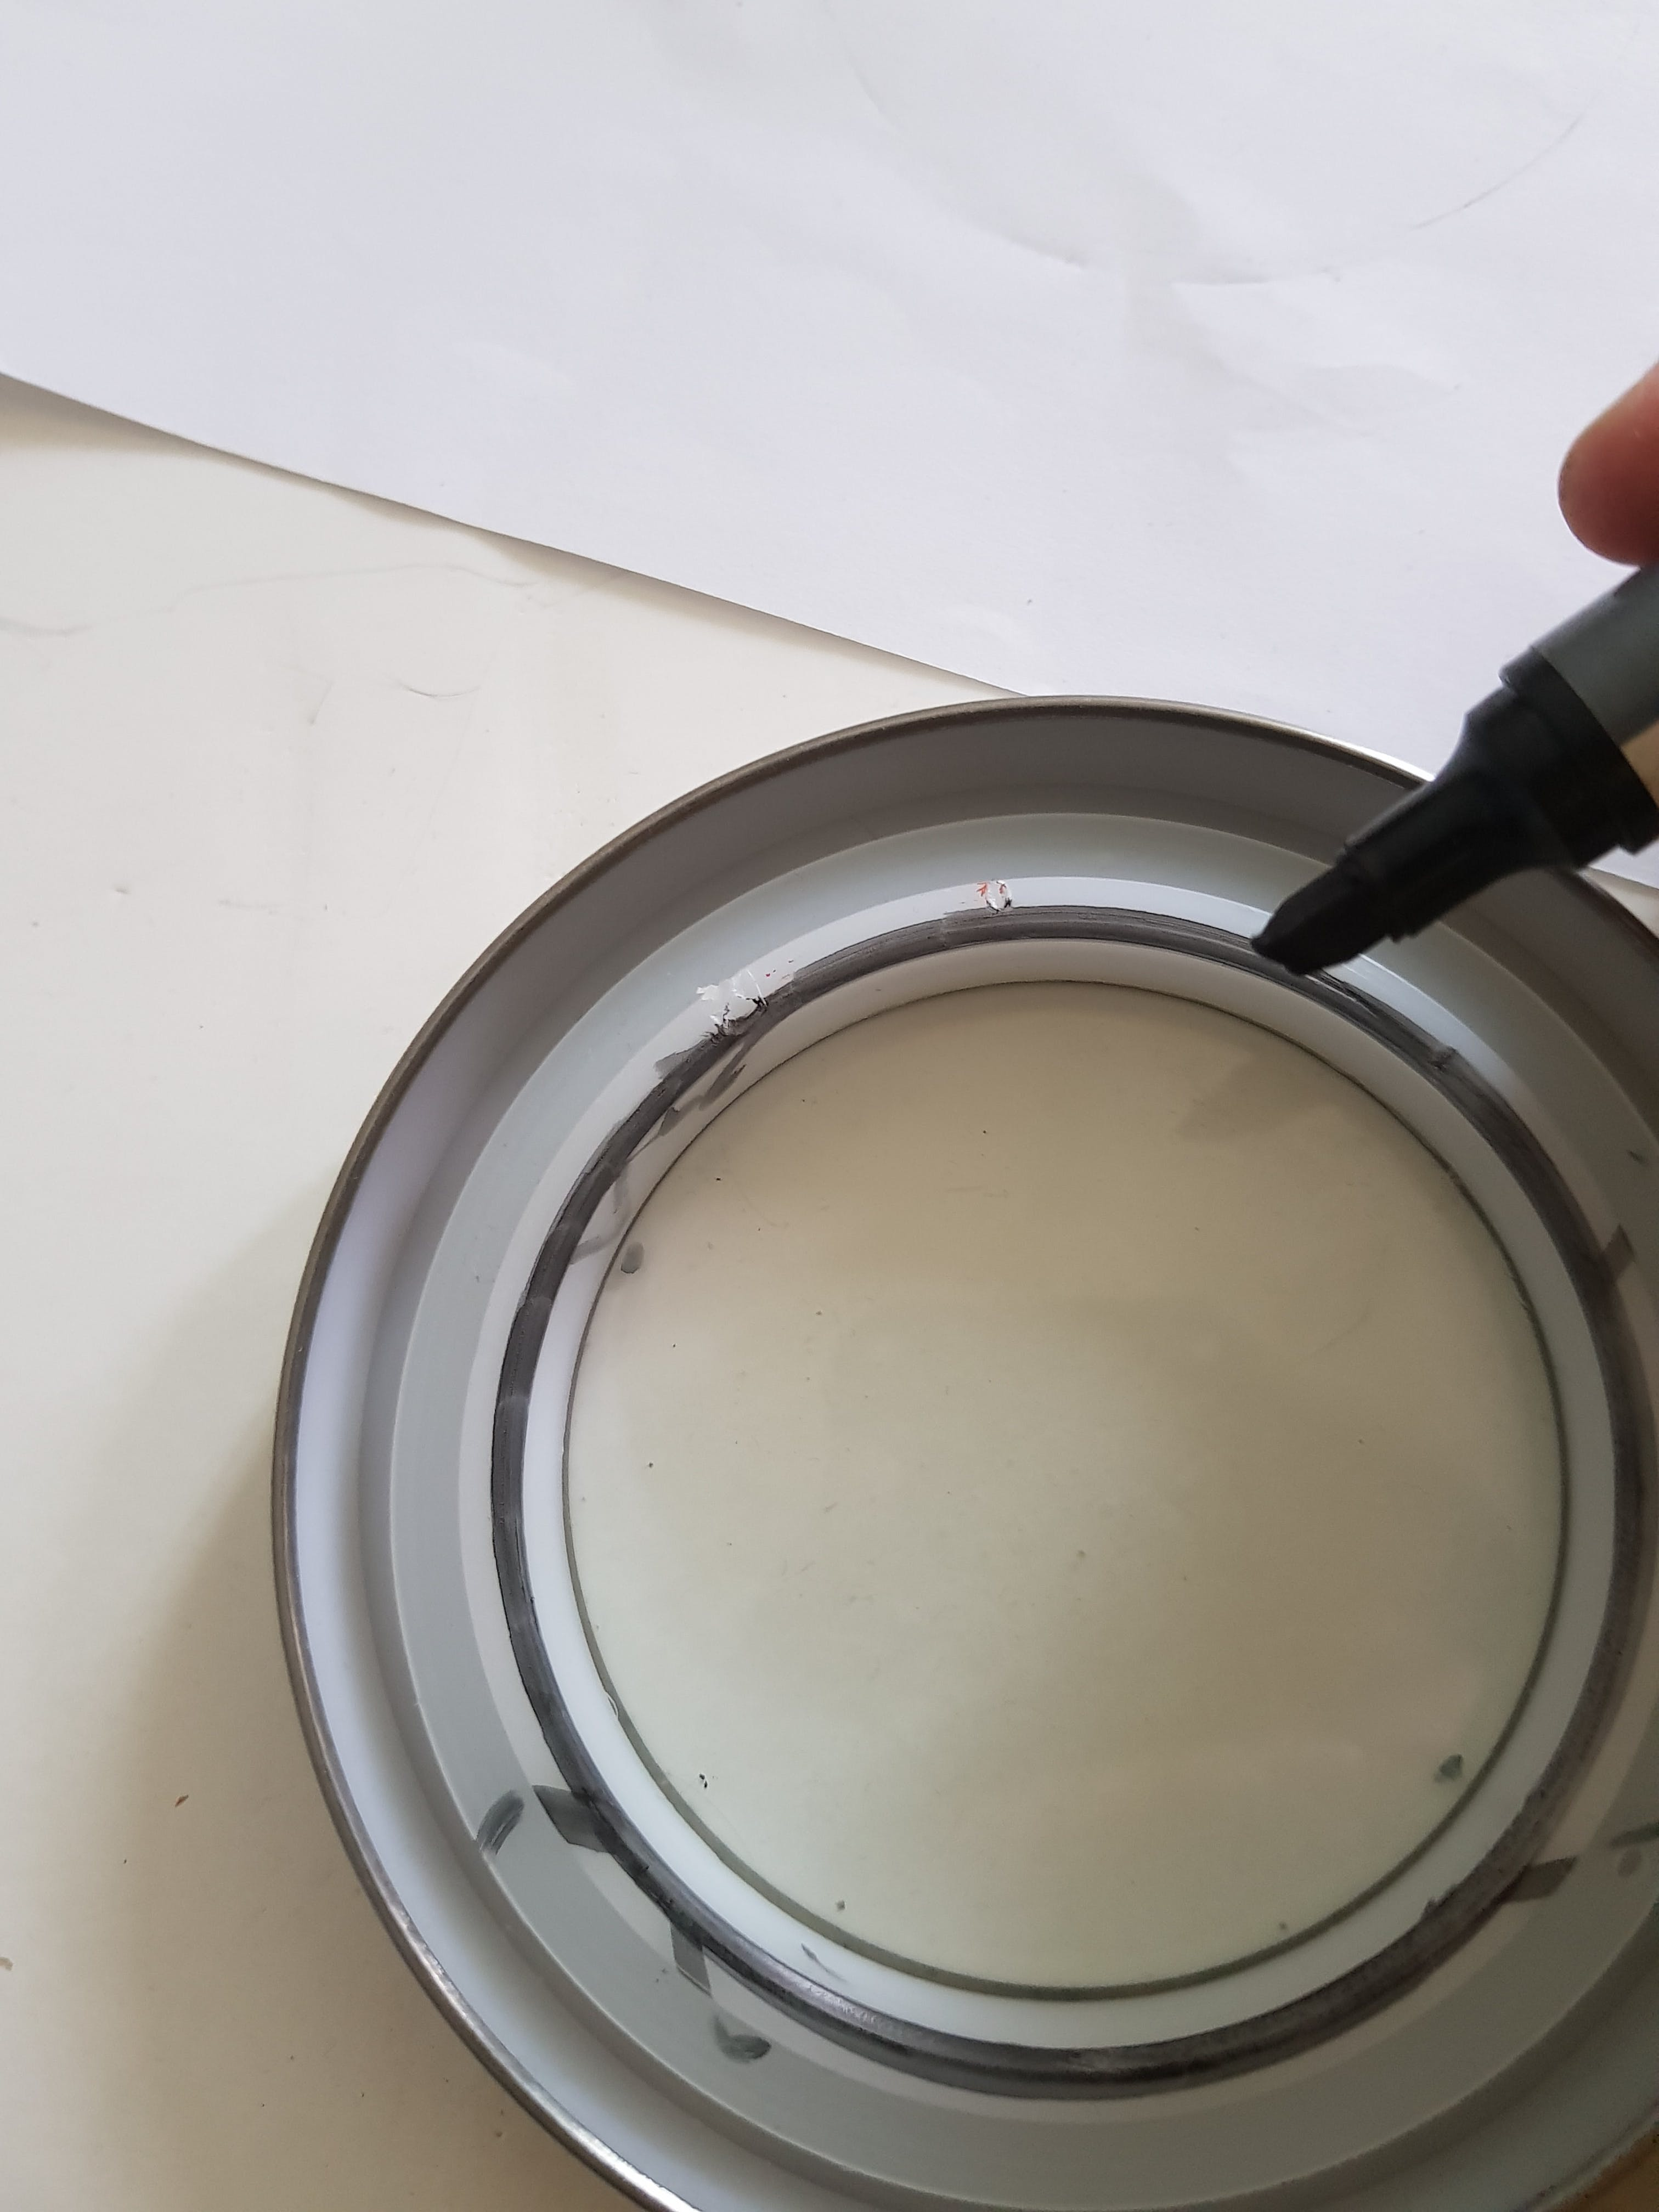 Marking the surrounding of the interior jar lid with wet marker